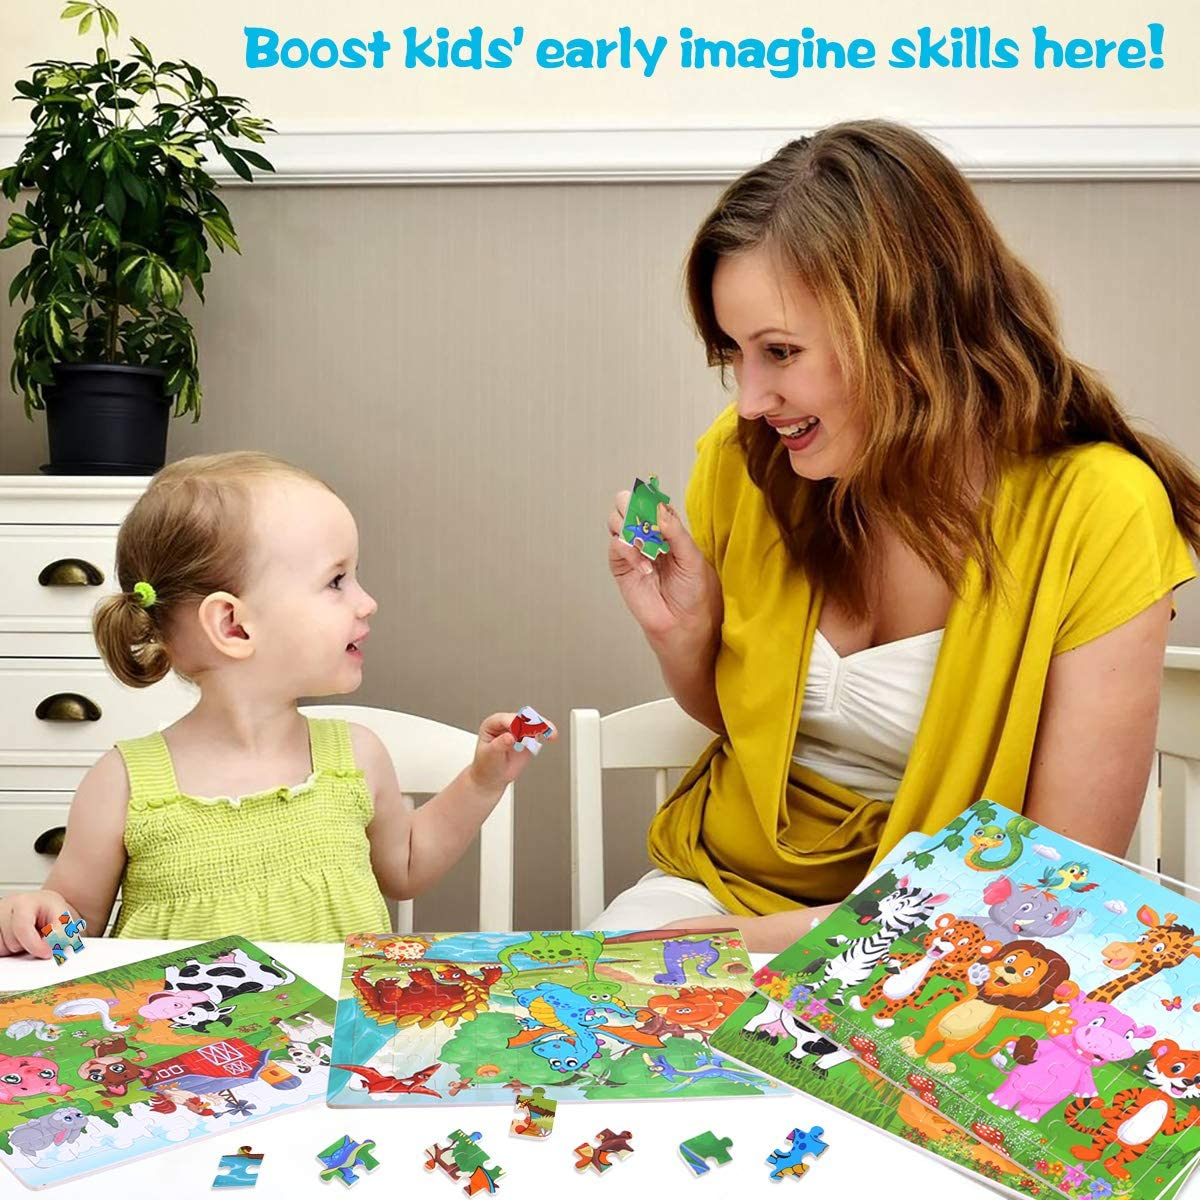 Puzzles for Kids Ages 3-8 4 Pack Wooden Jigsaw Puzzles 100 Pieces Preschool Educational Learning Toys Set for Boys Girls